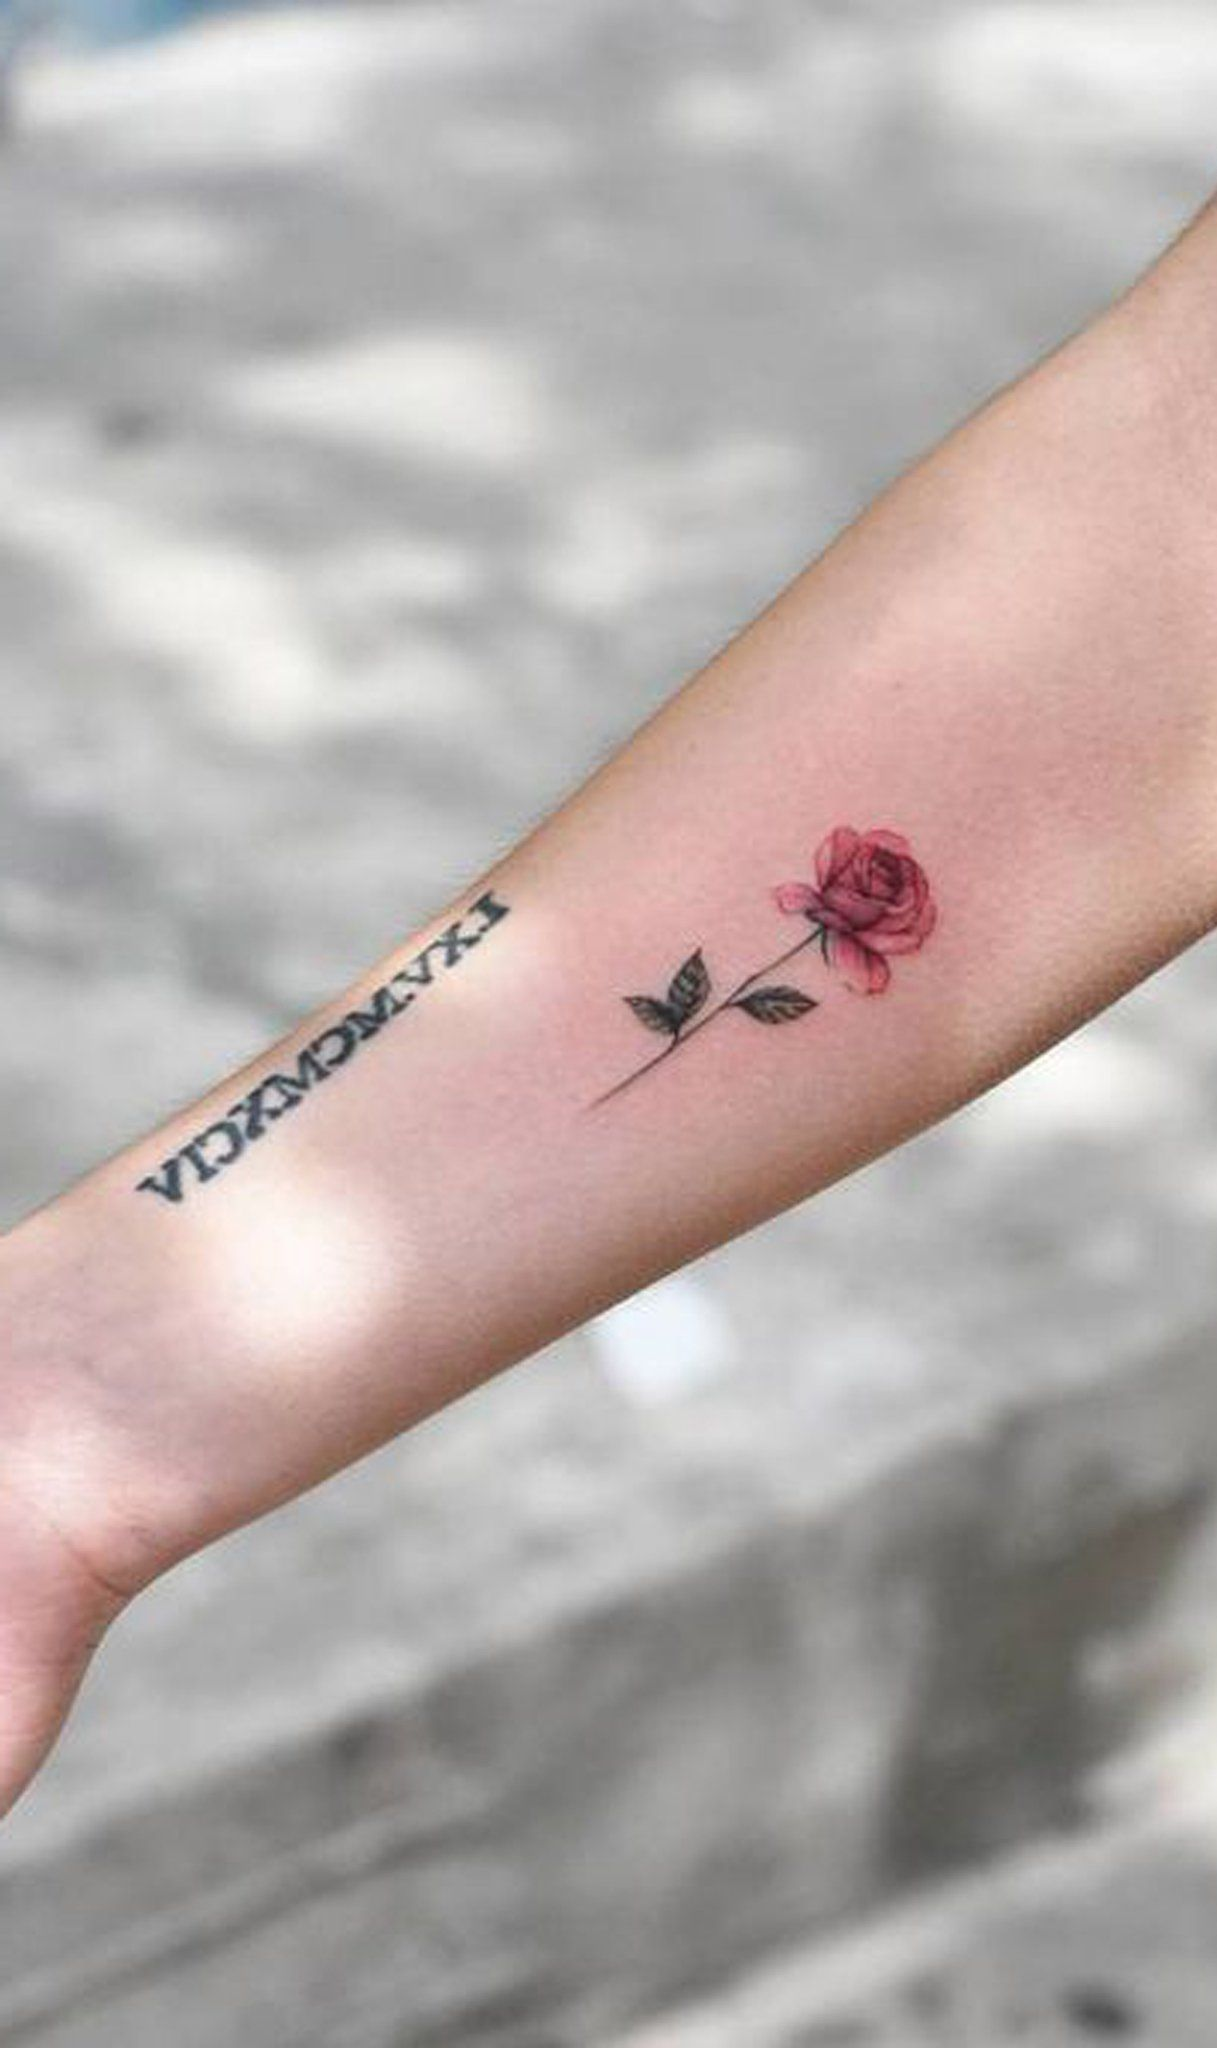 Black Floral Flower Outer Forearm Tattoo Ideas for Women